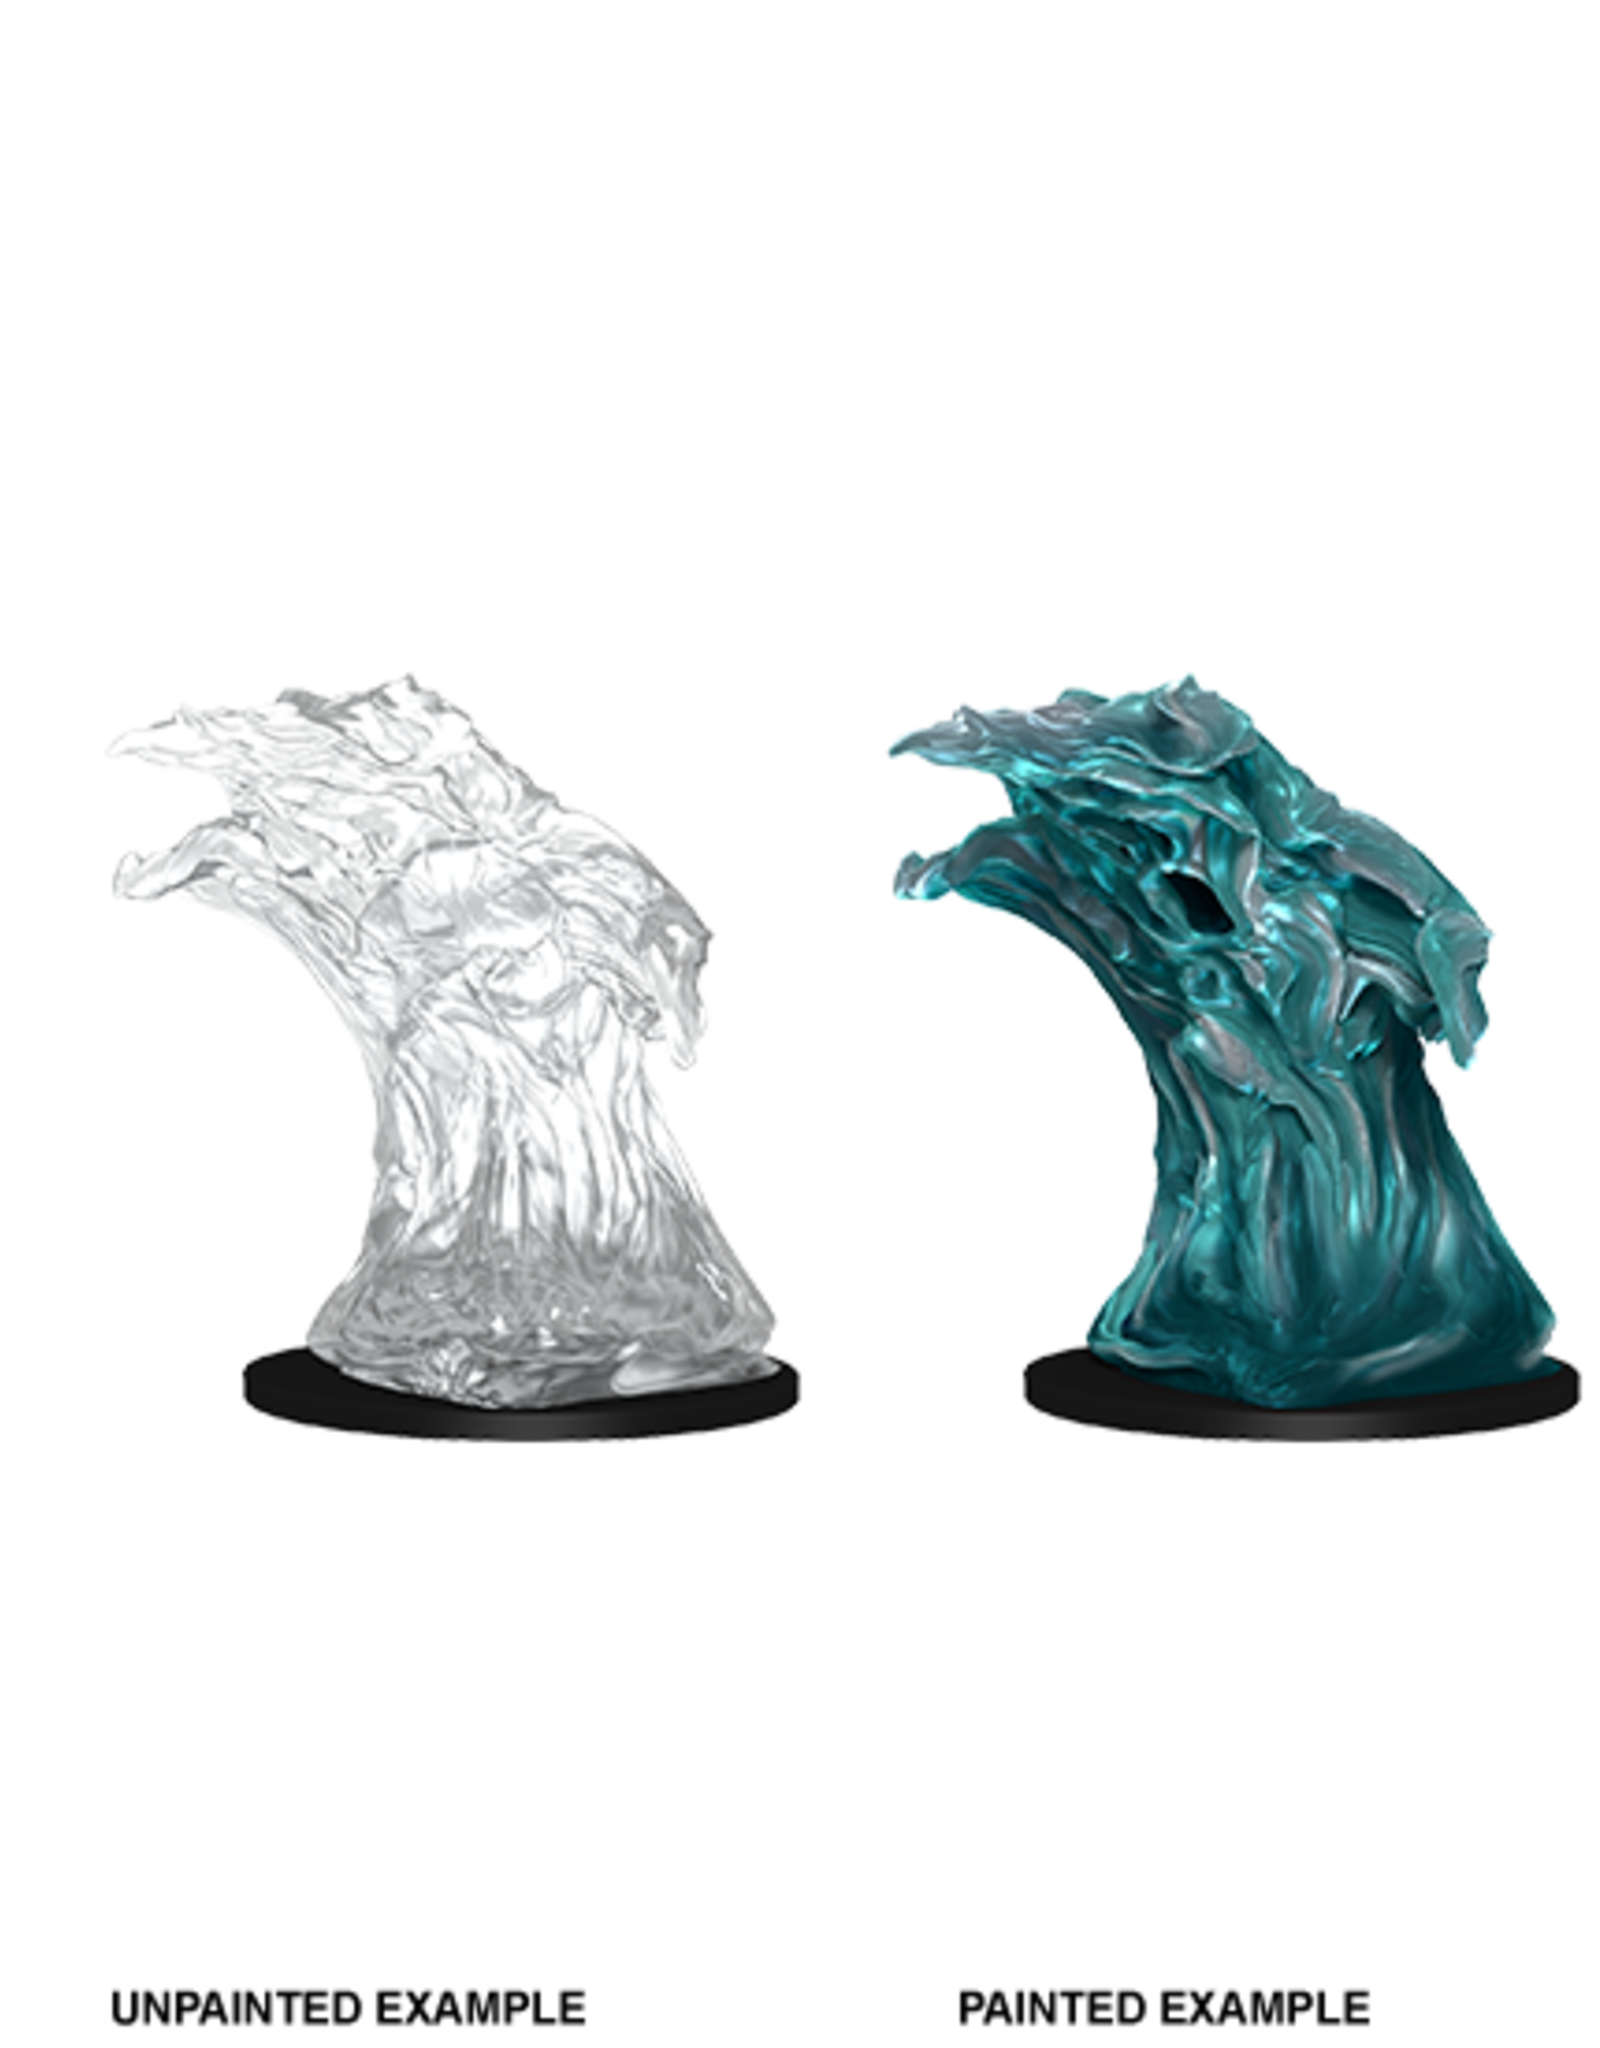 WizKids D&D Nolzur's Marvelous Miniatures: Water Elemental